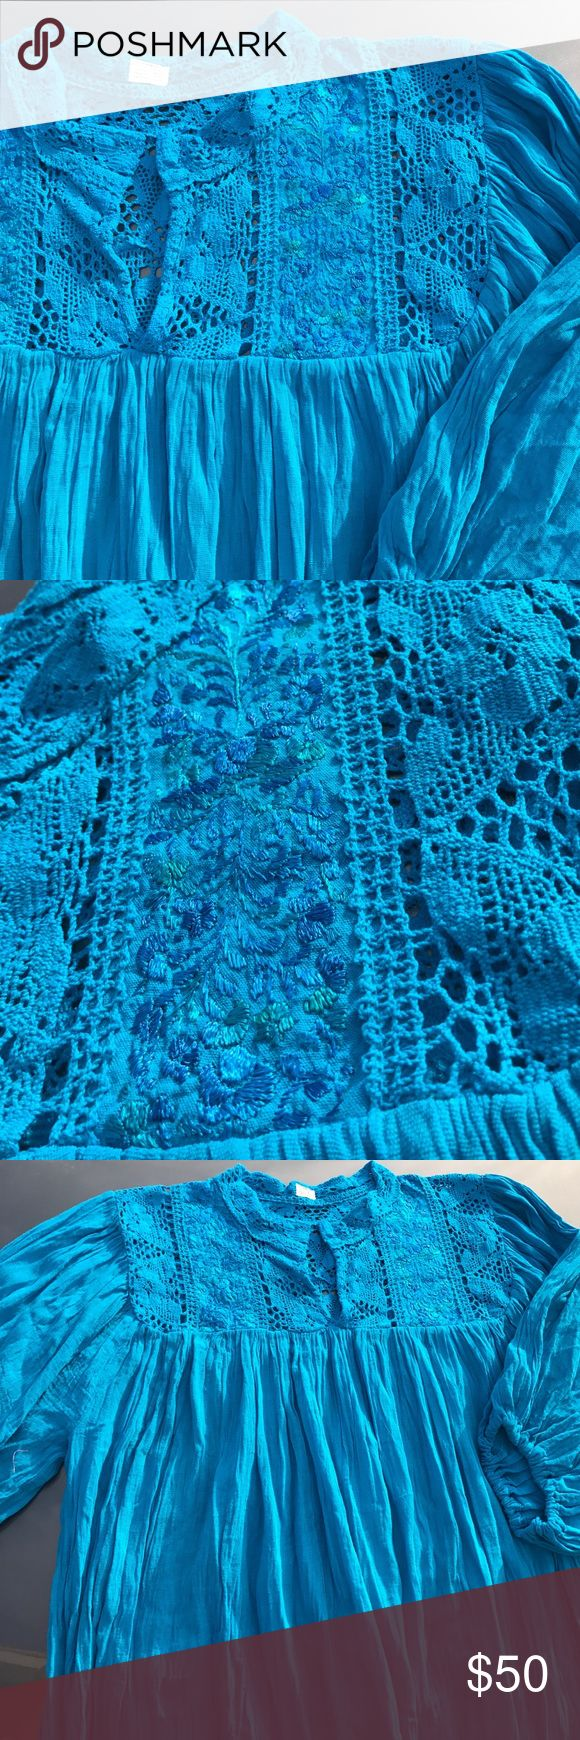 """❤️New Handmade Embroidered Boho Ethnic Blouse XXL Absolutely gorgeous! This Boho style top was made in Mexico and is a real beauty! Armpit to armpit 25"""" Neck to bottom hem line 31.5"""" Sleeves lenght 17.5"""" with elastic band, v-neck. Embroidered 100% by hand, blue floral design, crochet accents, gauze fabric, fresh and lightweight. Size 18 based on measurements. Cielito Lindo is located in Mcallen TX visit us to see our wide variety of Mexican items! Or visit…"""